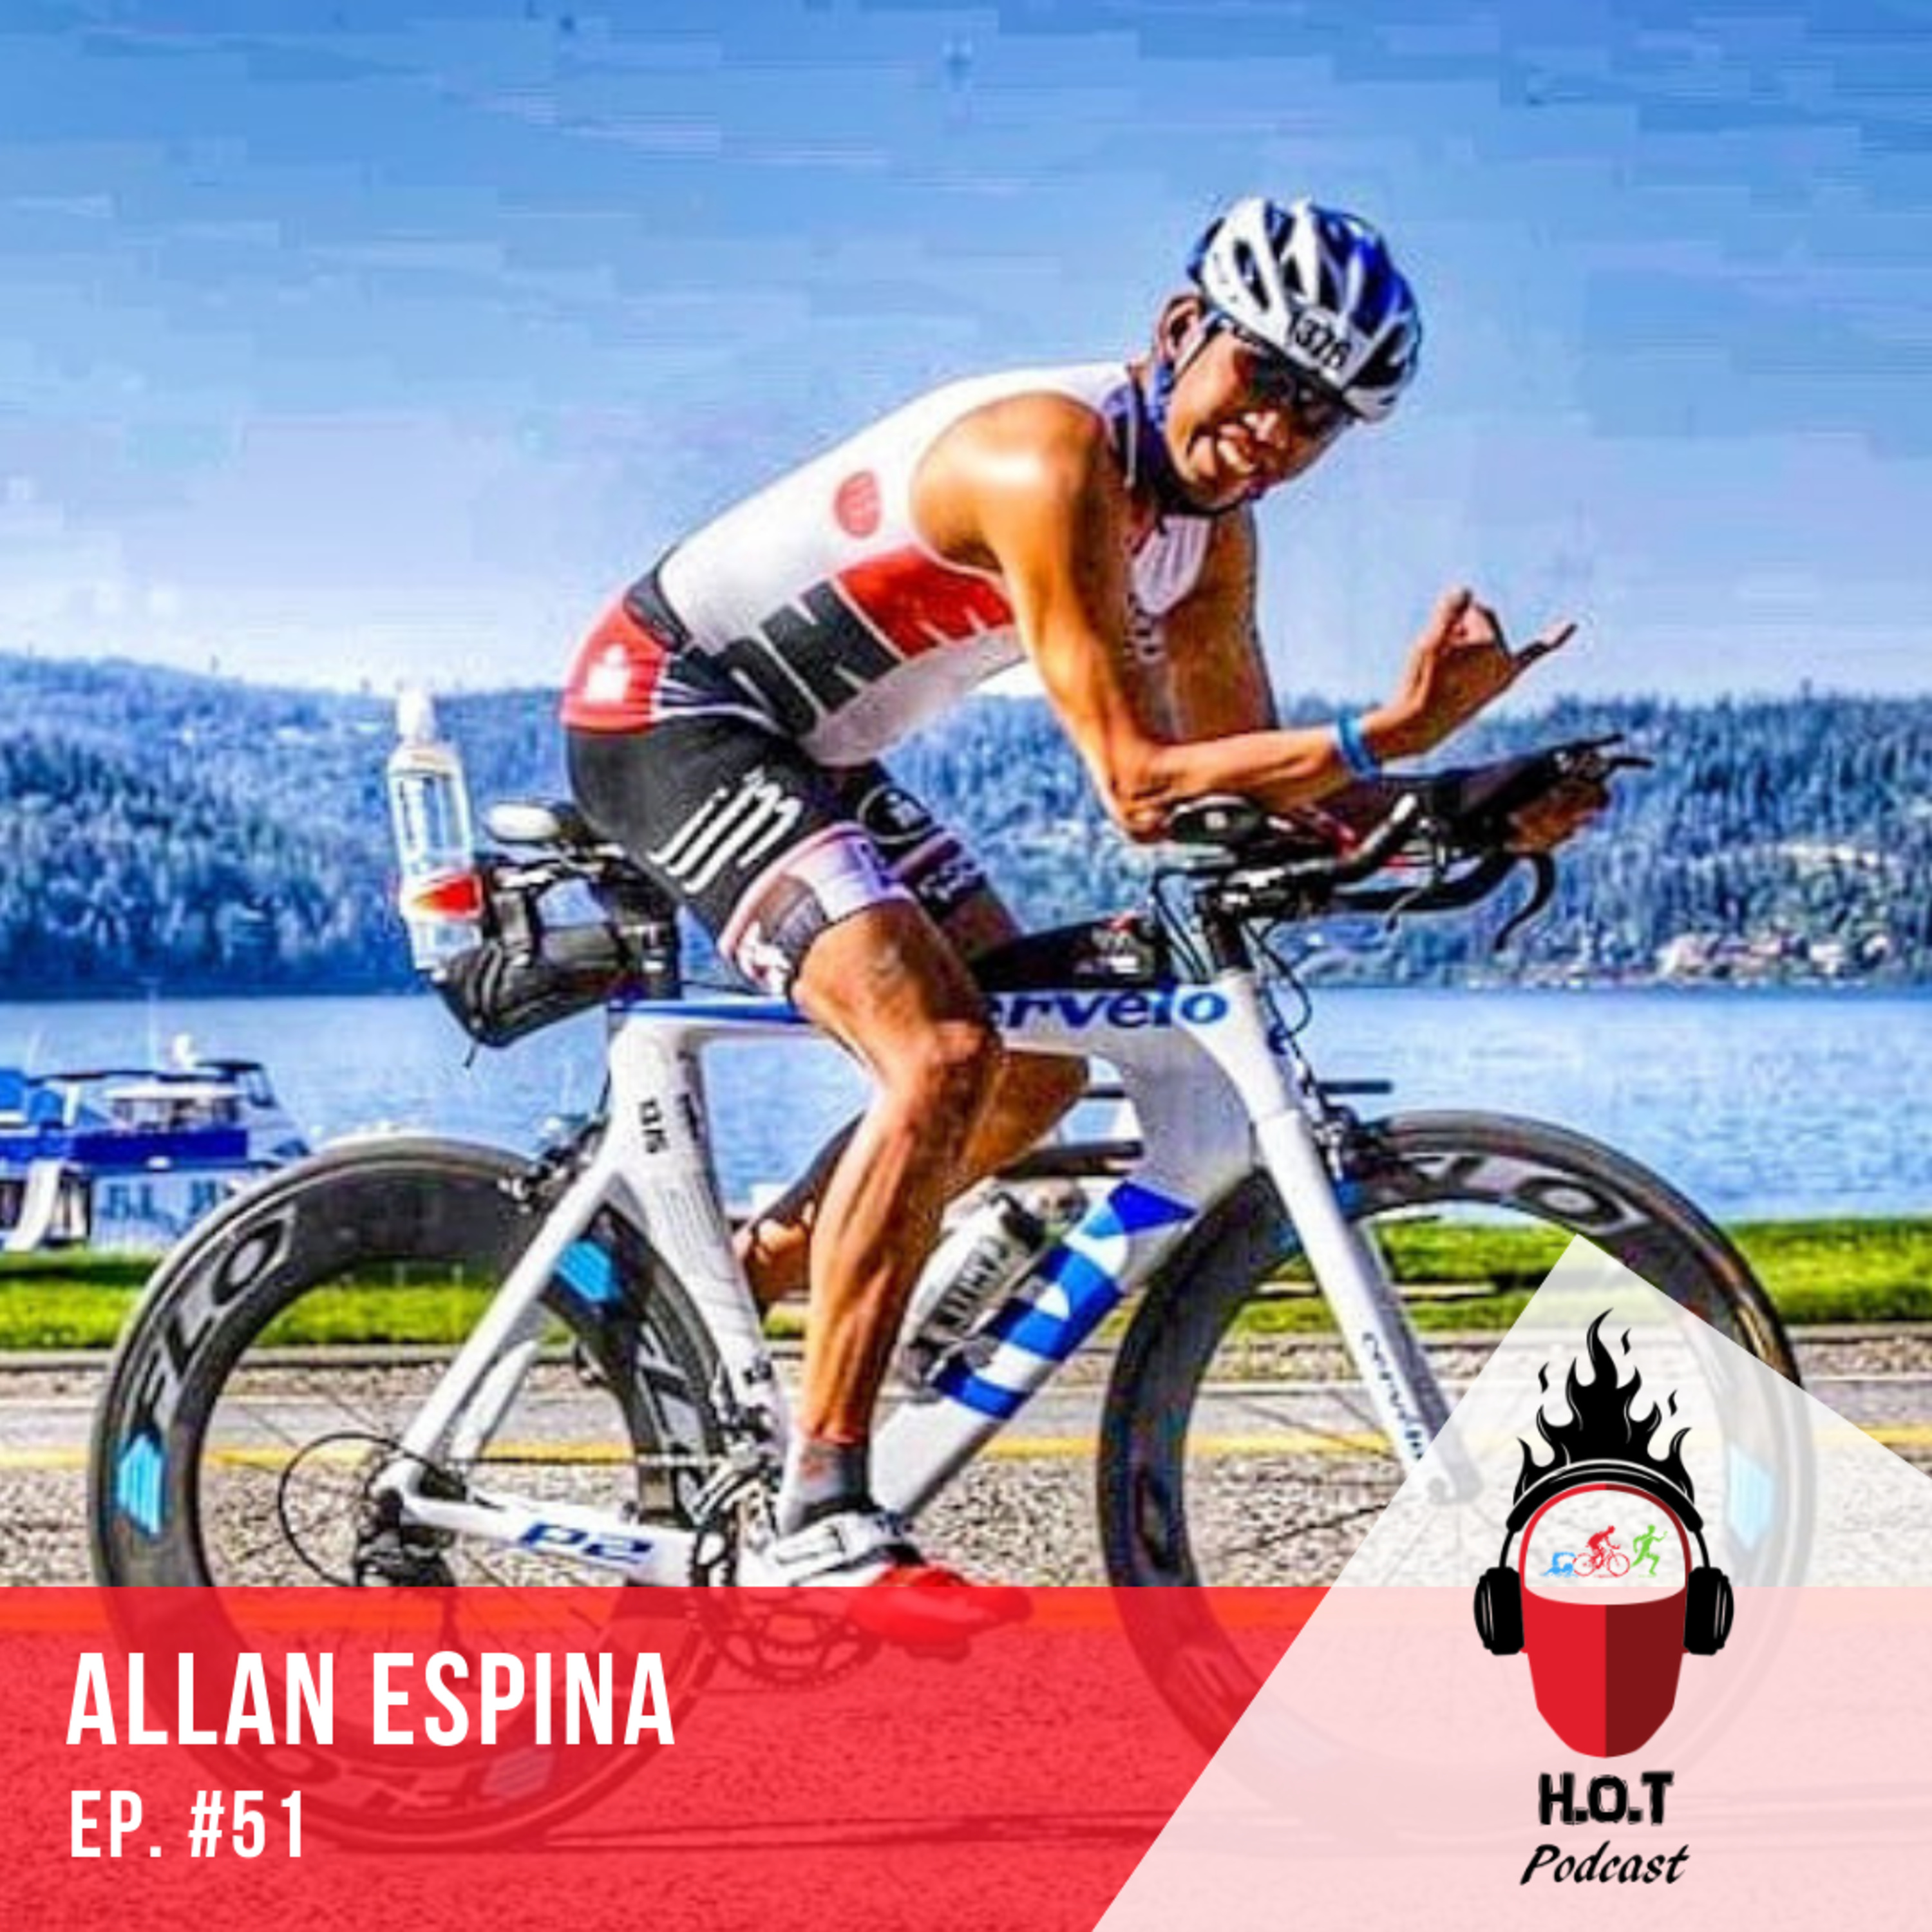 Ep. #51: Allan Espina | Don't Let Others Define Who You Are #SayNoToBullying